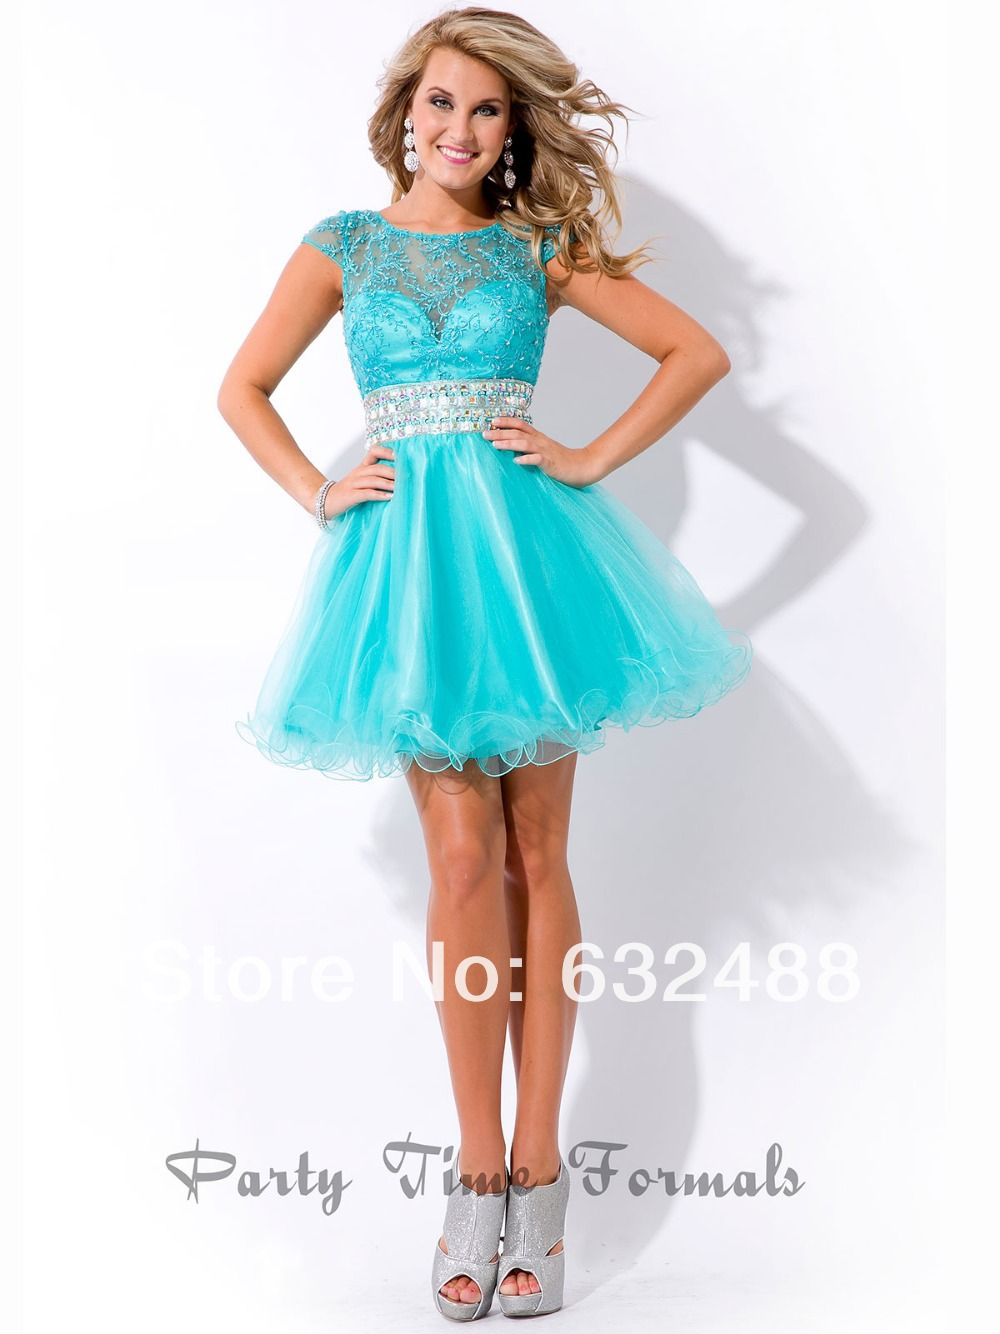 Enchanting Short Prom Dresses For Kids Embellishment - Wedding Dress ...